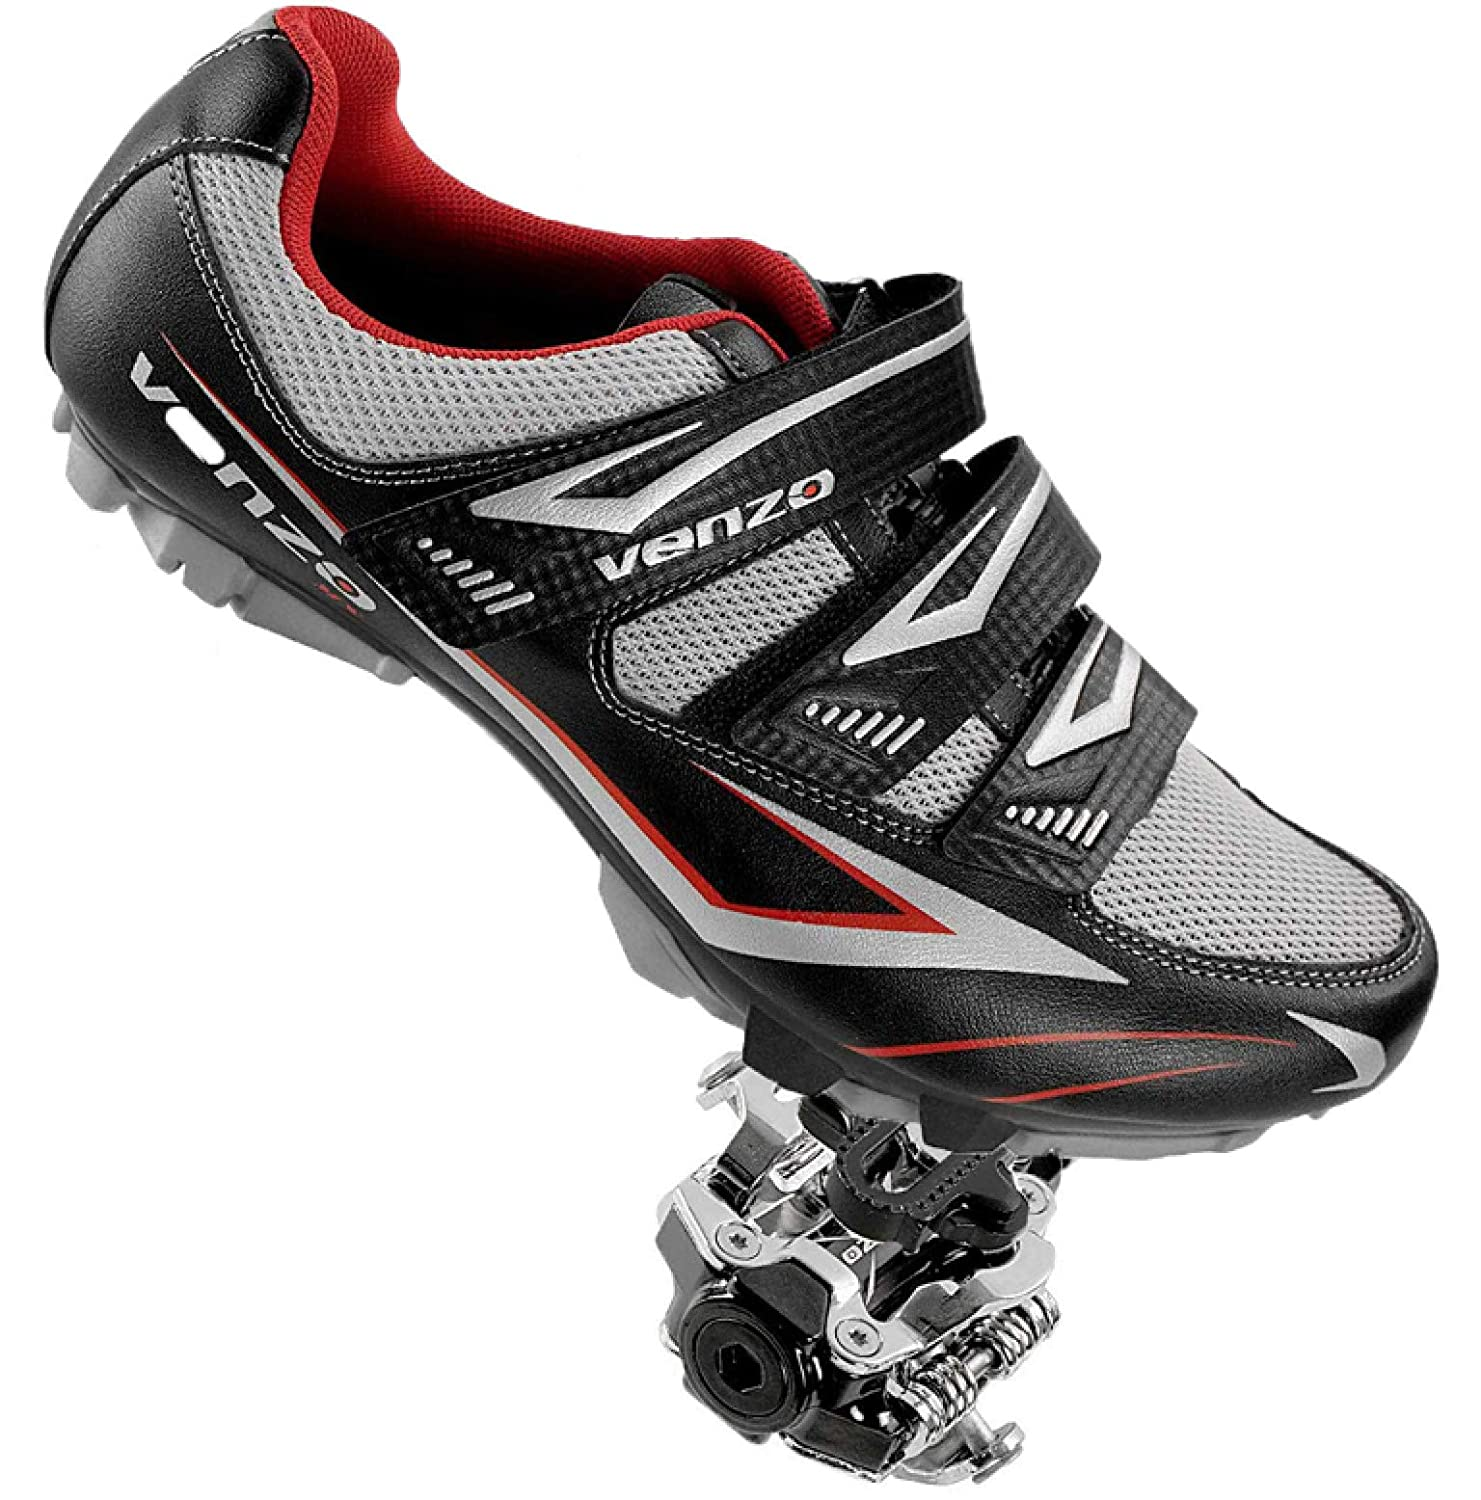 Venzo Mountain Bike Bicycle Cycling Compatible with Shimano SPD Shoes Pedals Cleats 44